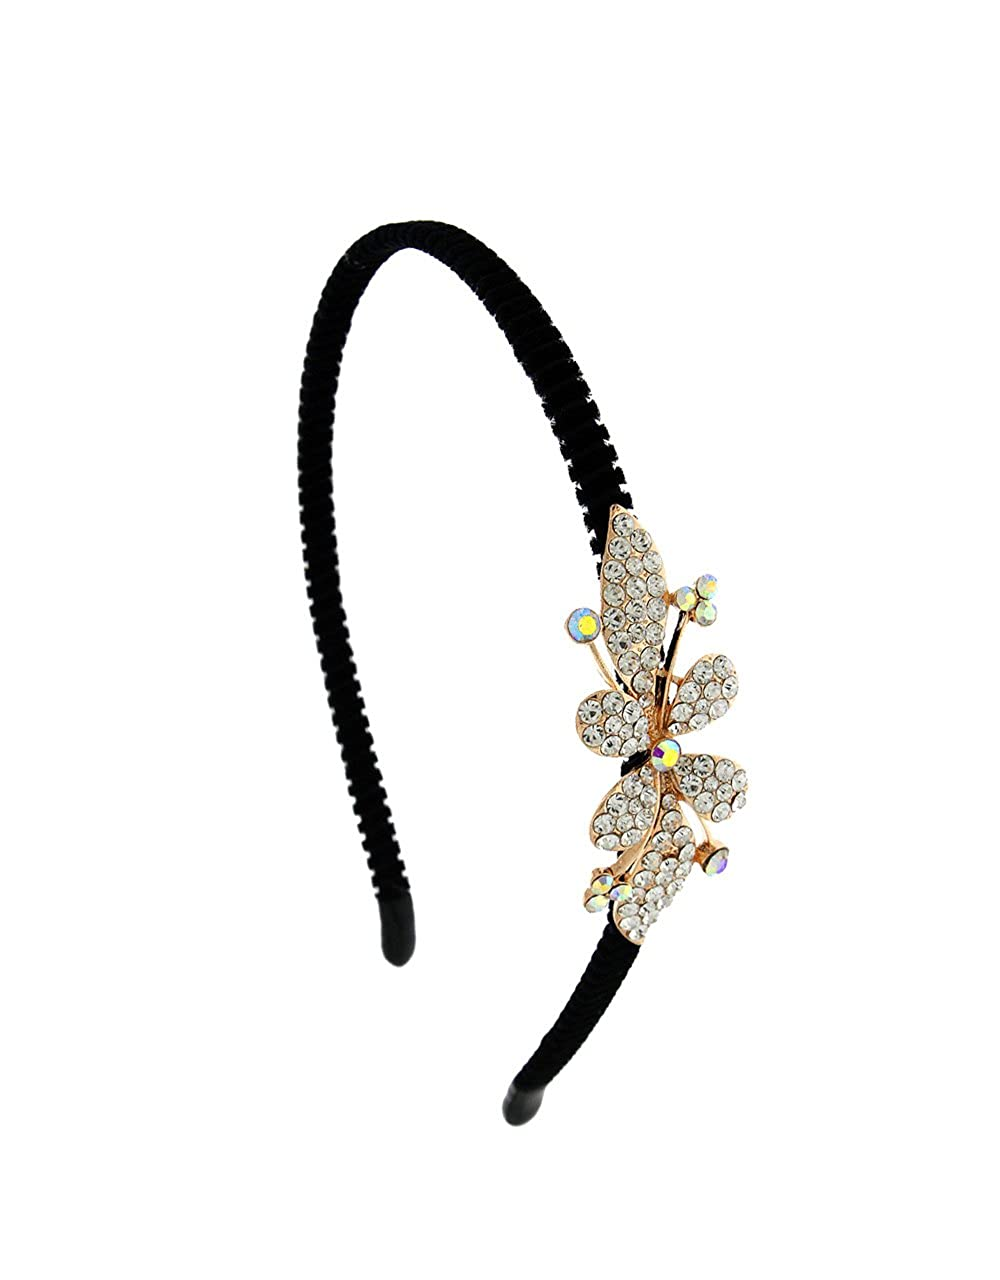 a94c87bbb Buy Anuradha Art Gold Finish Flower Inspired Beautiful Stylish Hair  Accessories Hair Band For Women/Girls Online at Low Prices in India    Amazon Jewellery ...